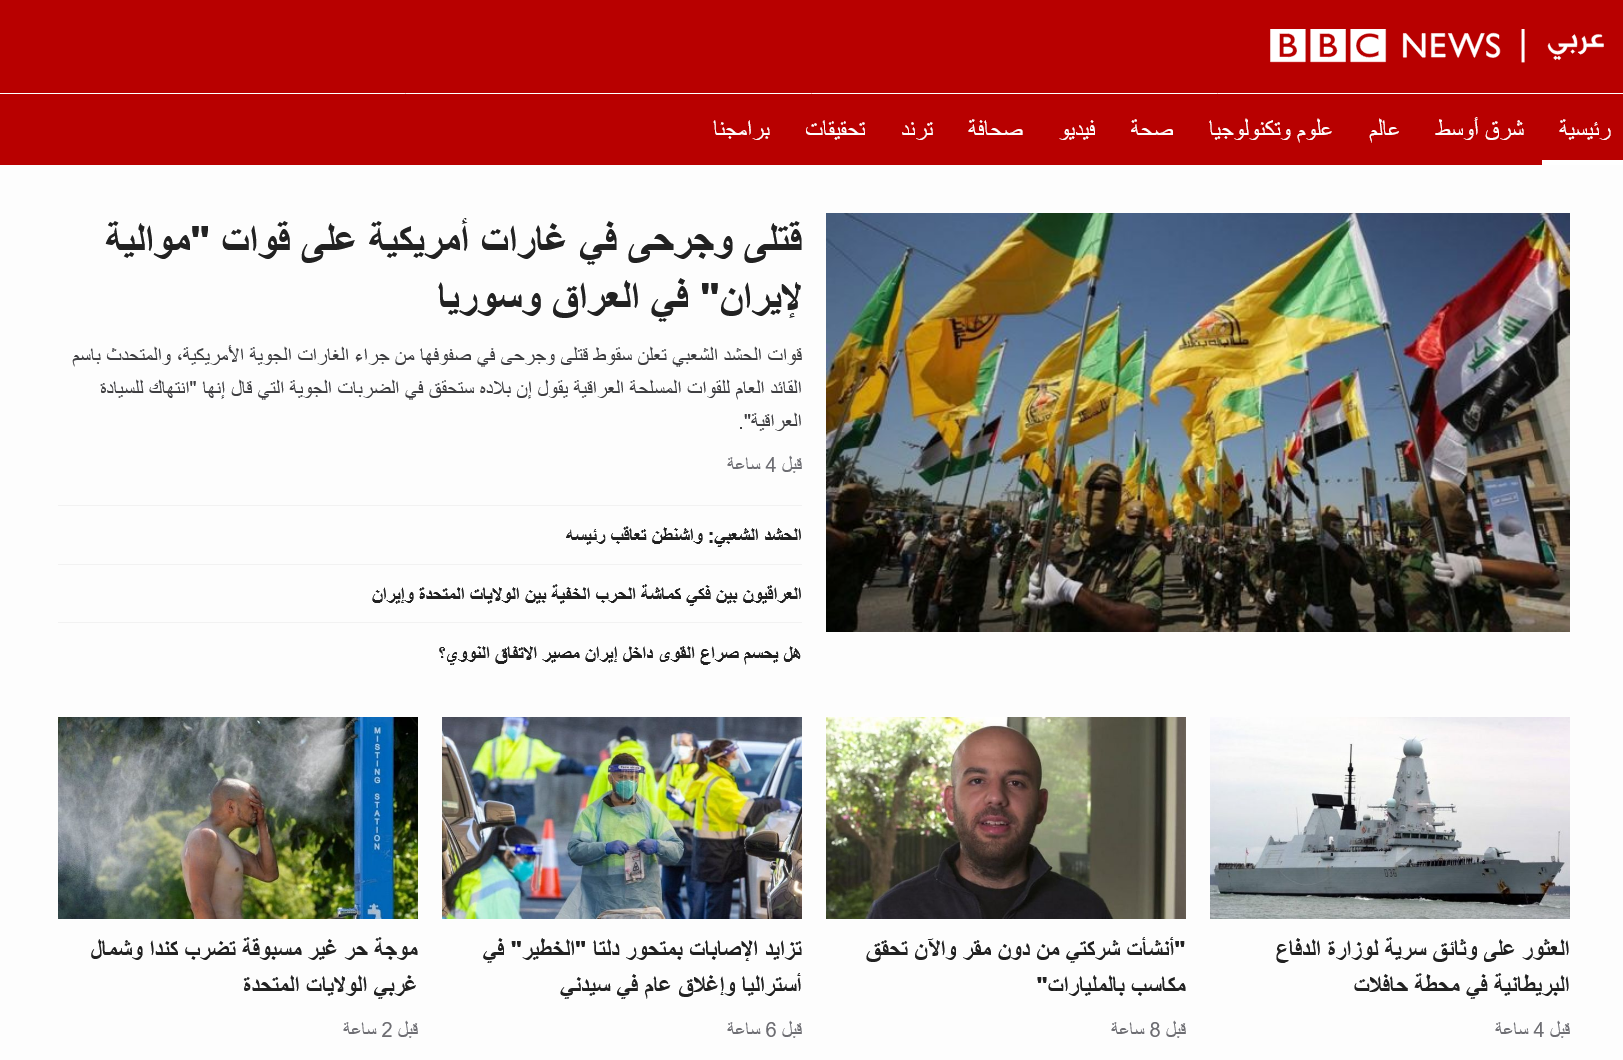 Screenshot of the BBC website. The header is red with the BBC logo aligned to the right of the screen. The navigation is also in red and aligned to the right. There is a featured article with right-aligned text and a large image to the right of it. Below that are four more article cards in a single row, each with an image above a title and date and aligned right.